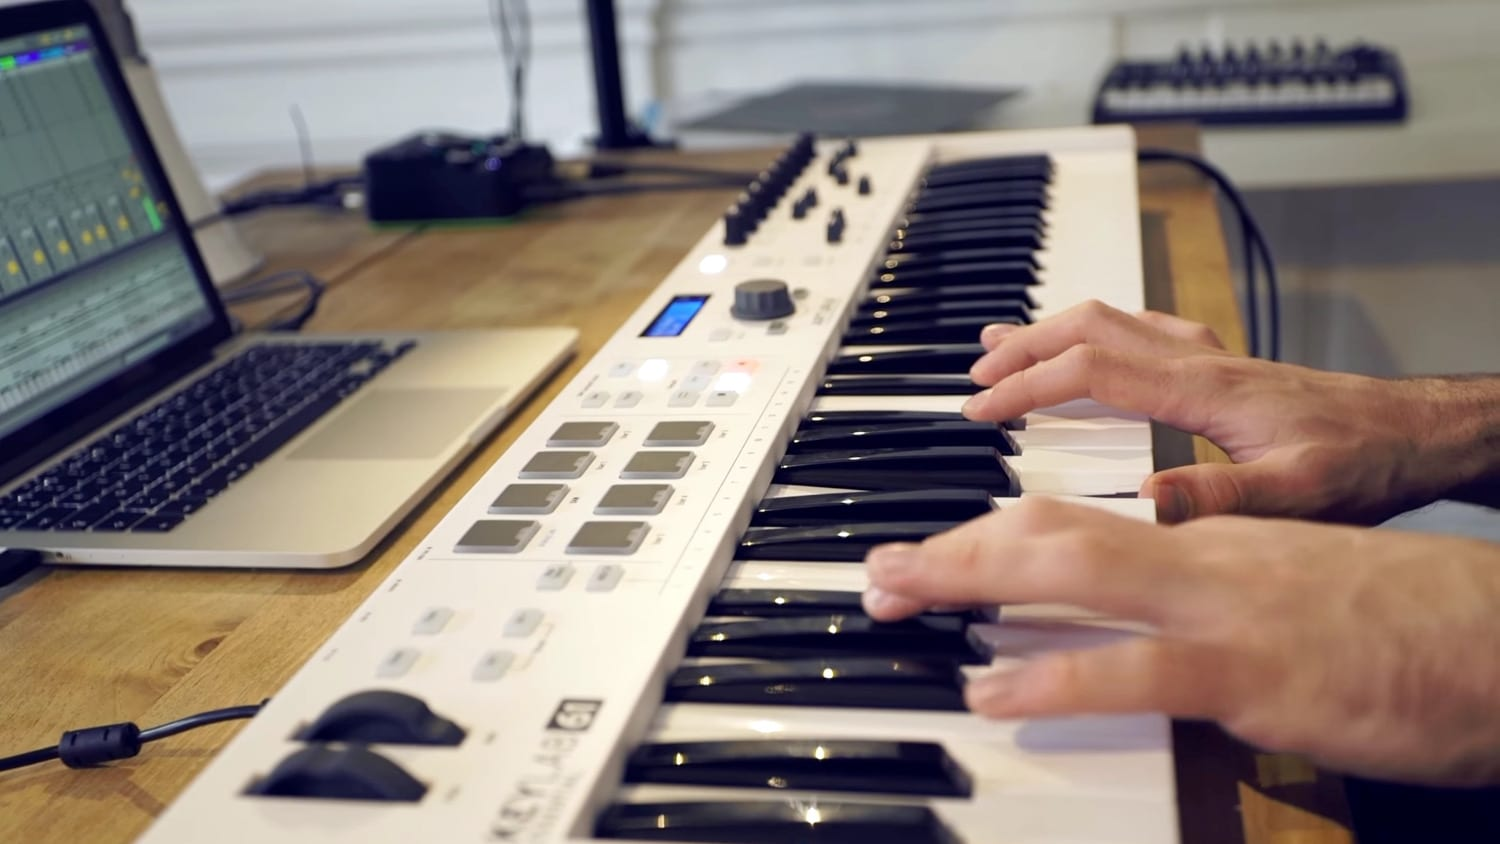 arturia launches keylab essential 49 and 61 controllers all things gear. Black Bedroom Furniture Sets. Home Design Ideas